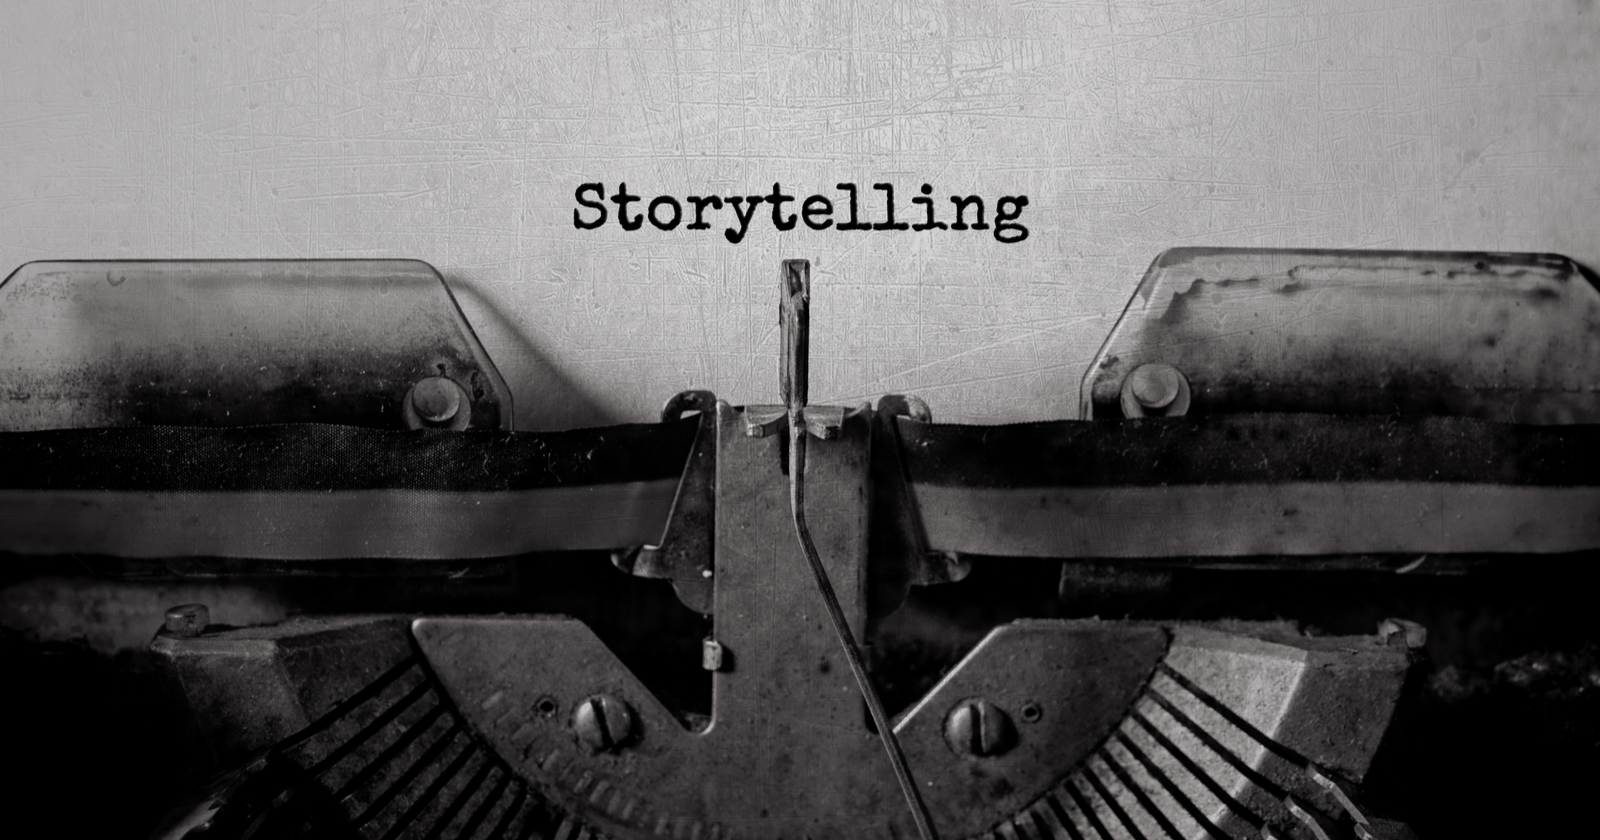 Storytelling: The Heart of Content Marketing